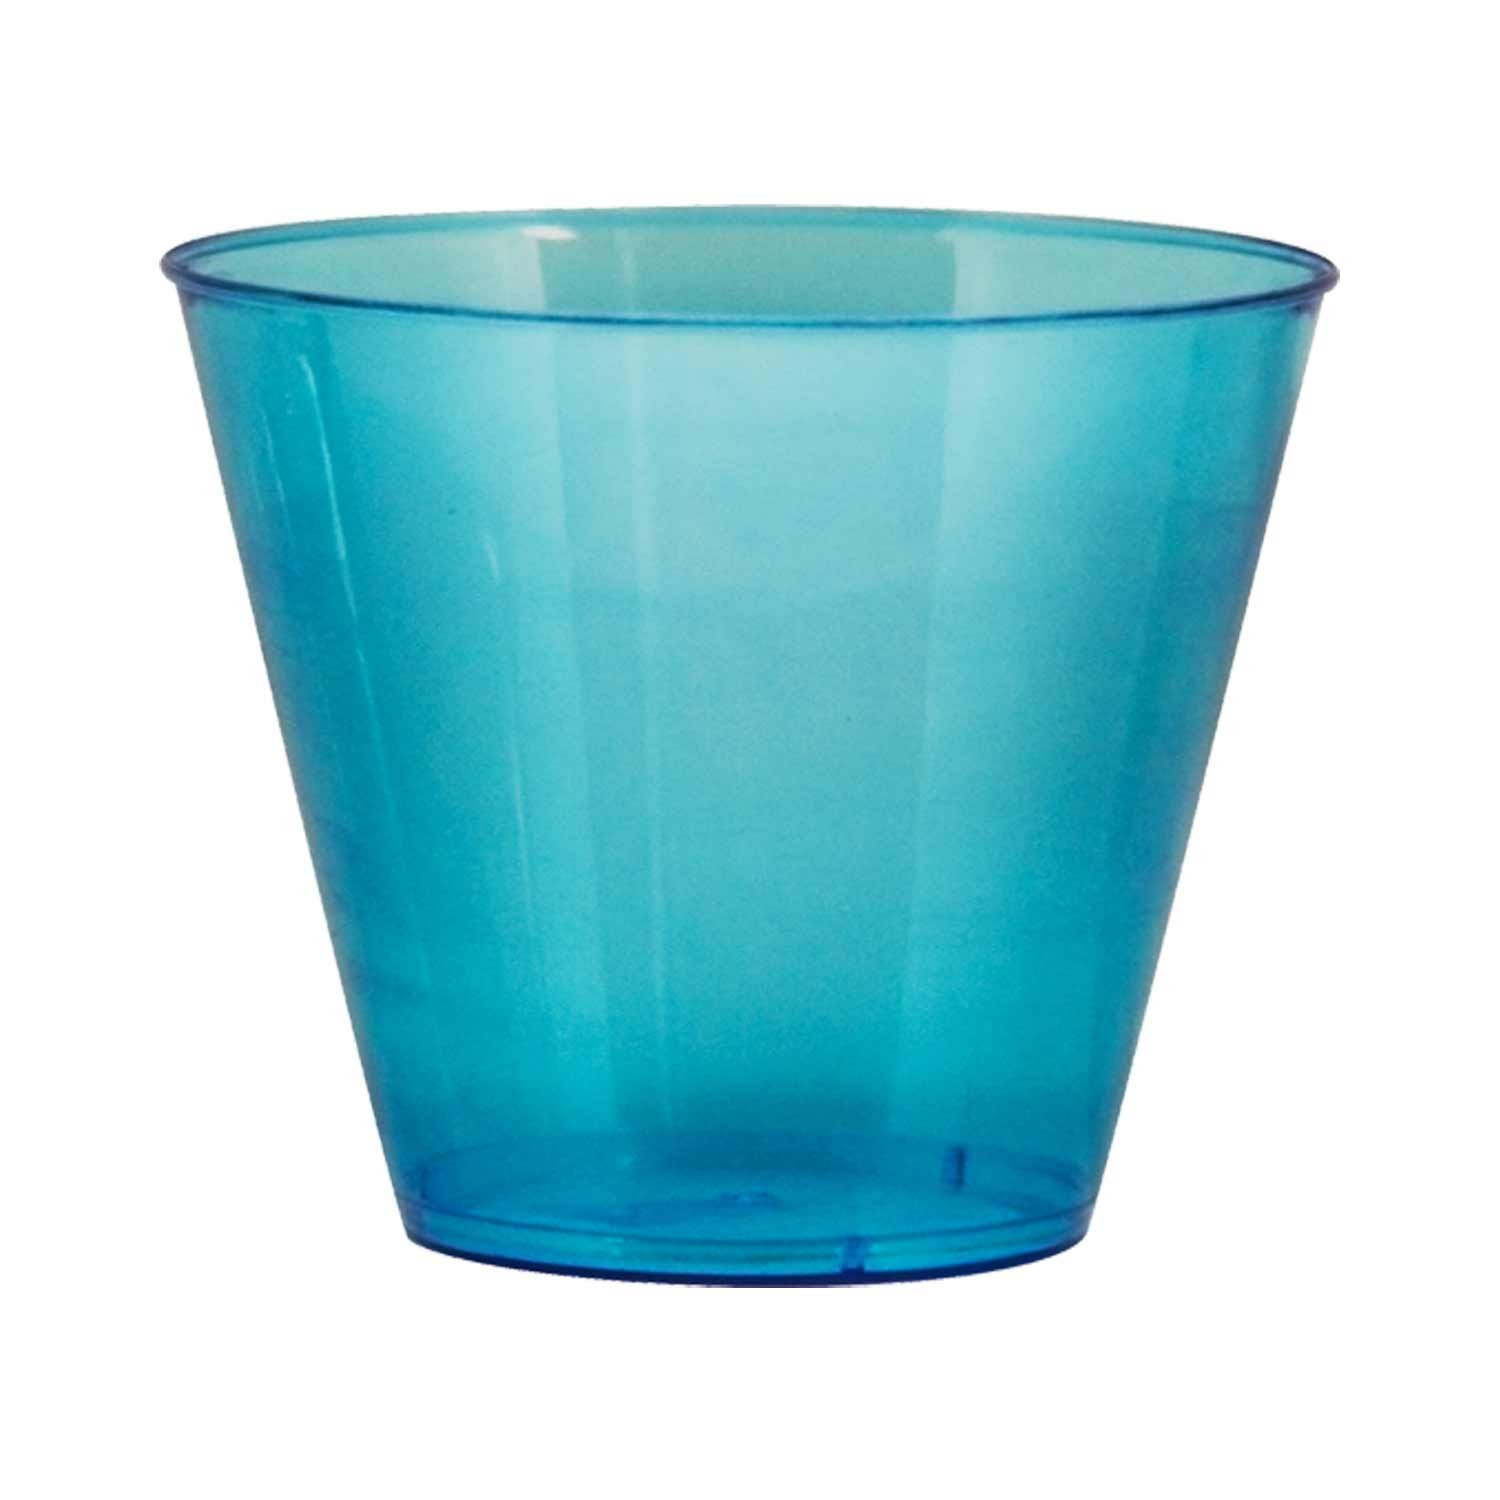 Party Essentials N540 Hard Plastic Cups/Tumblers, 5-Ounce Capacity, Clear (Case of 1000)